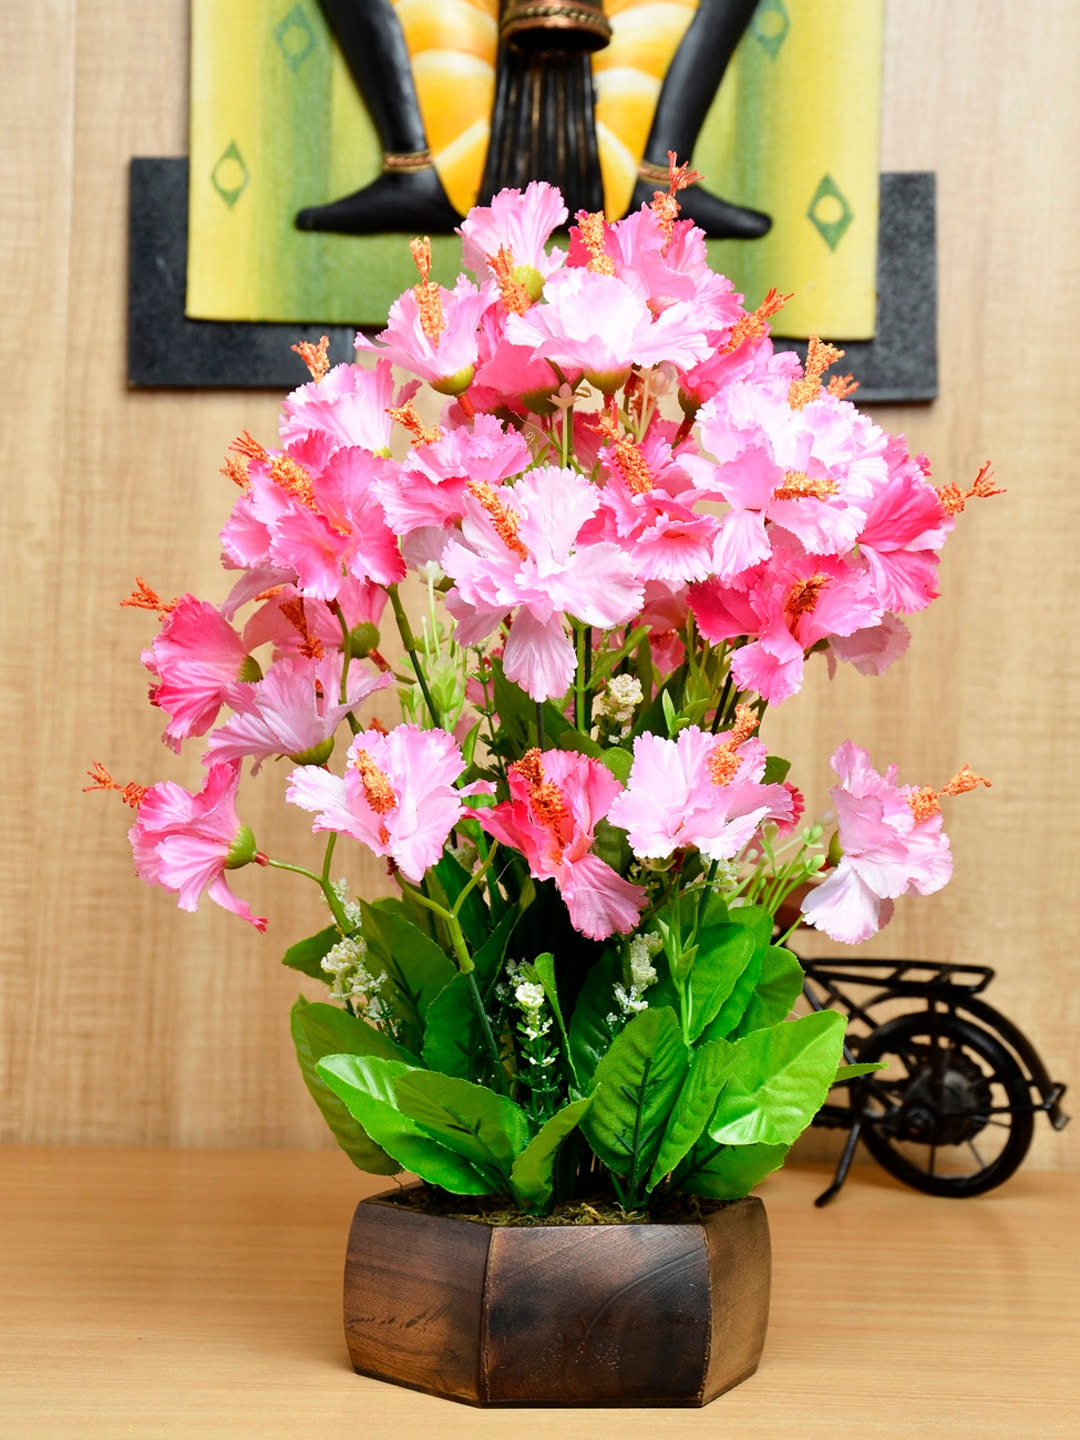 e151c4358e88 Artificial Flowers and Plants Store Online